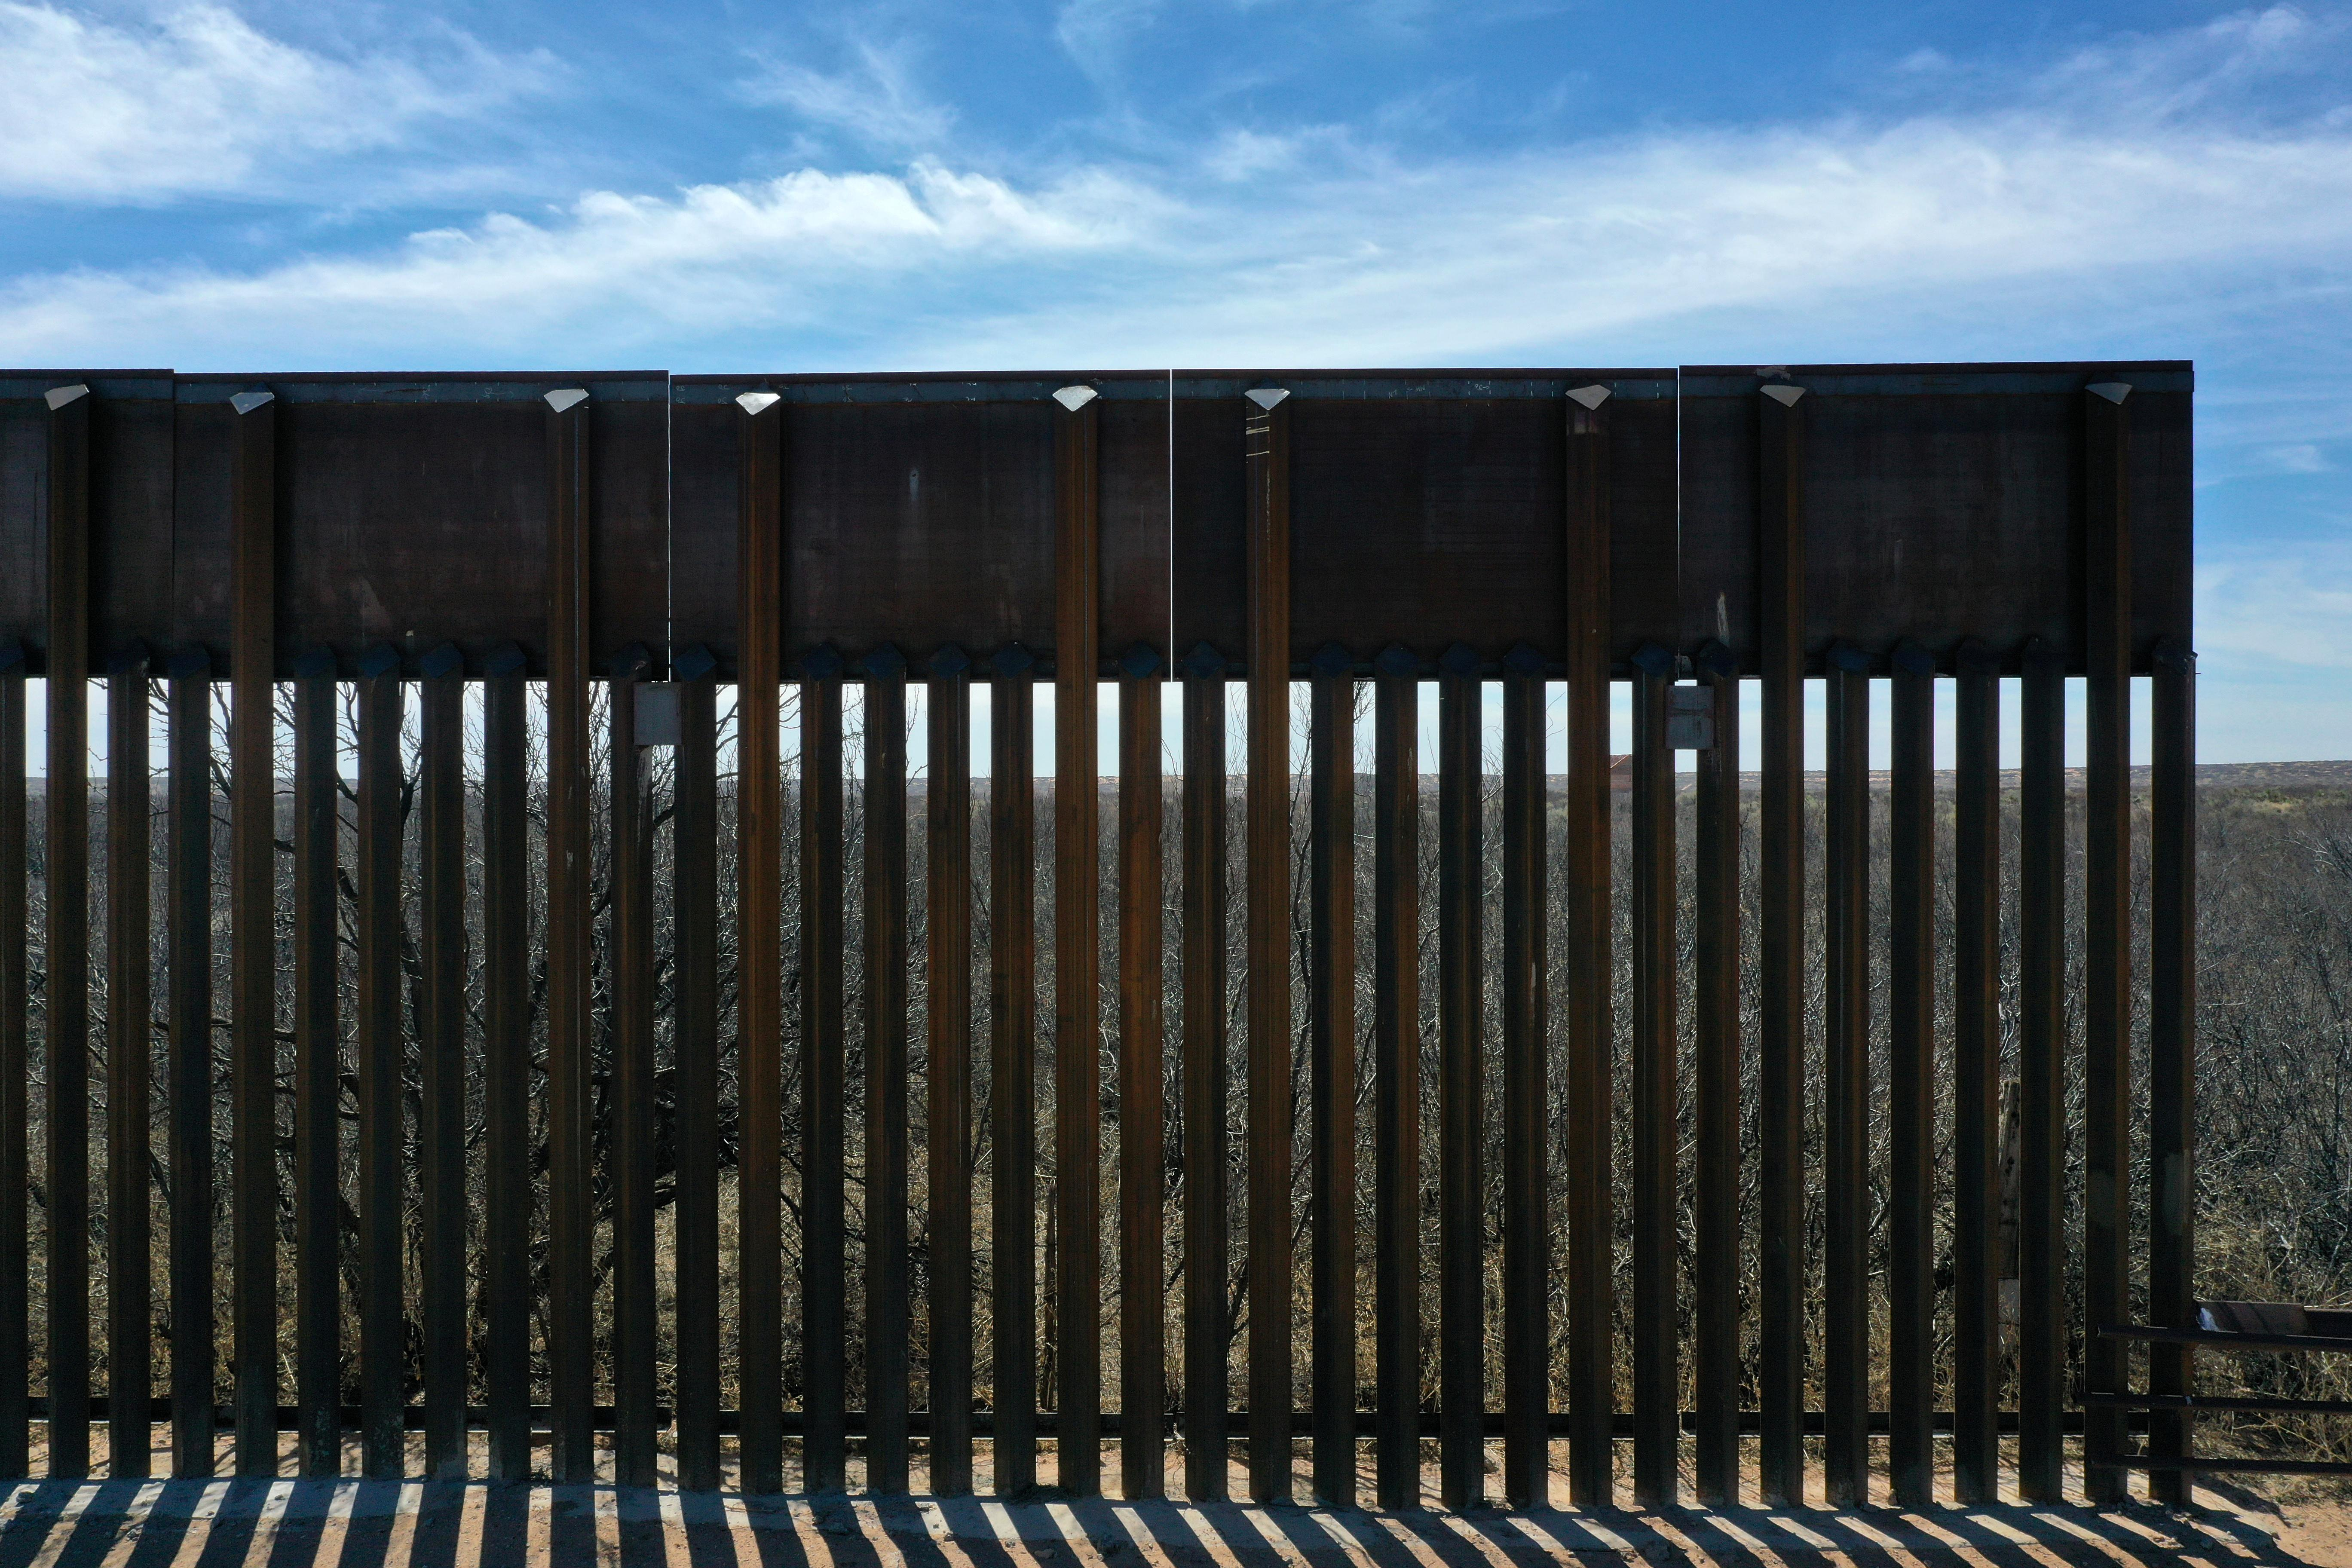 New bollard-style U.S.-Mexico border fencing is seen in Santa Teresa, New Mexico, U.S., March 5, 2019. Picture taken March 5, 2019. Lucy Nicholson - RC1FD8531B60